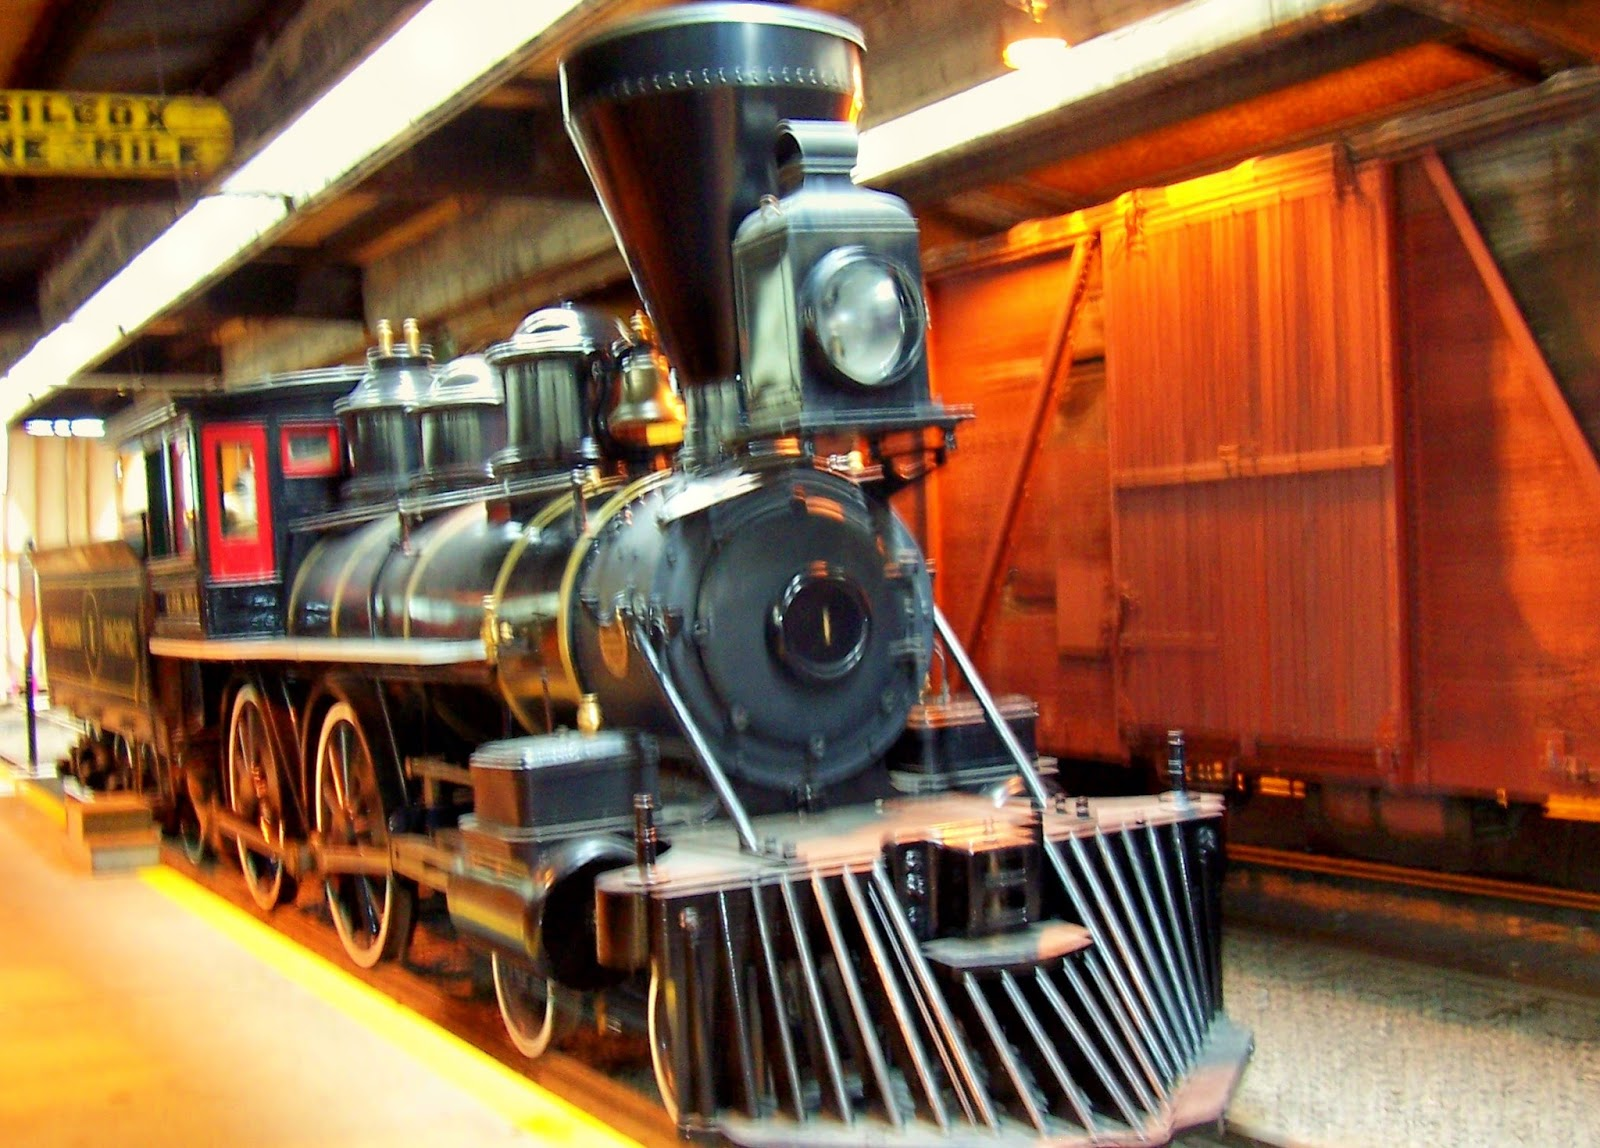 Winnipeg Railway Museum - 123 Main Street